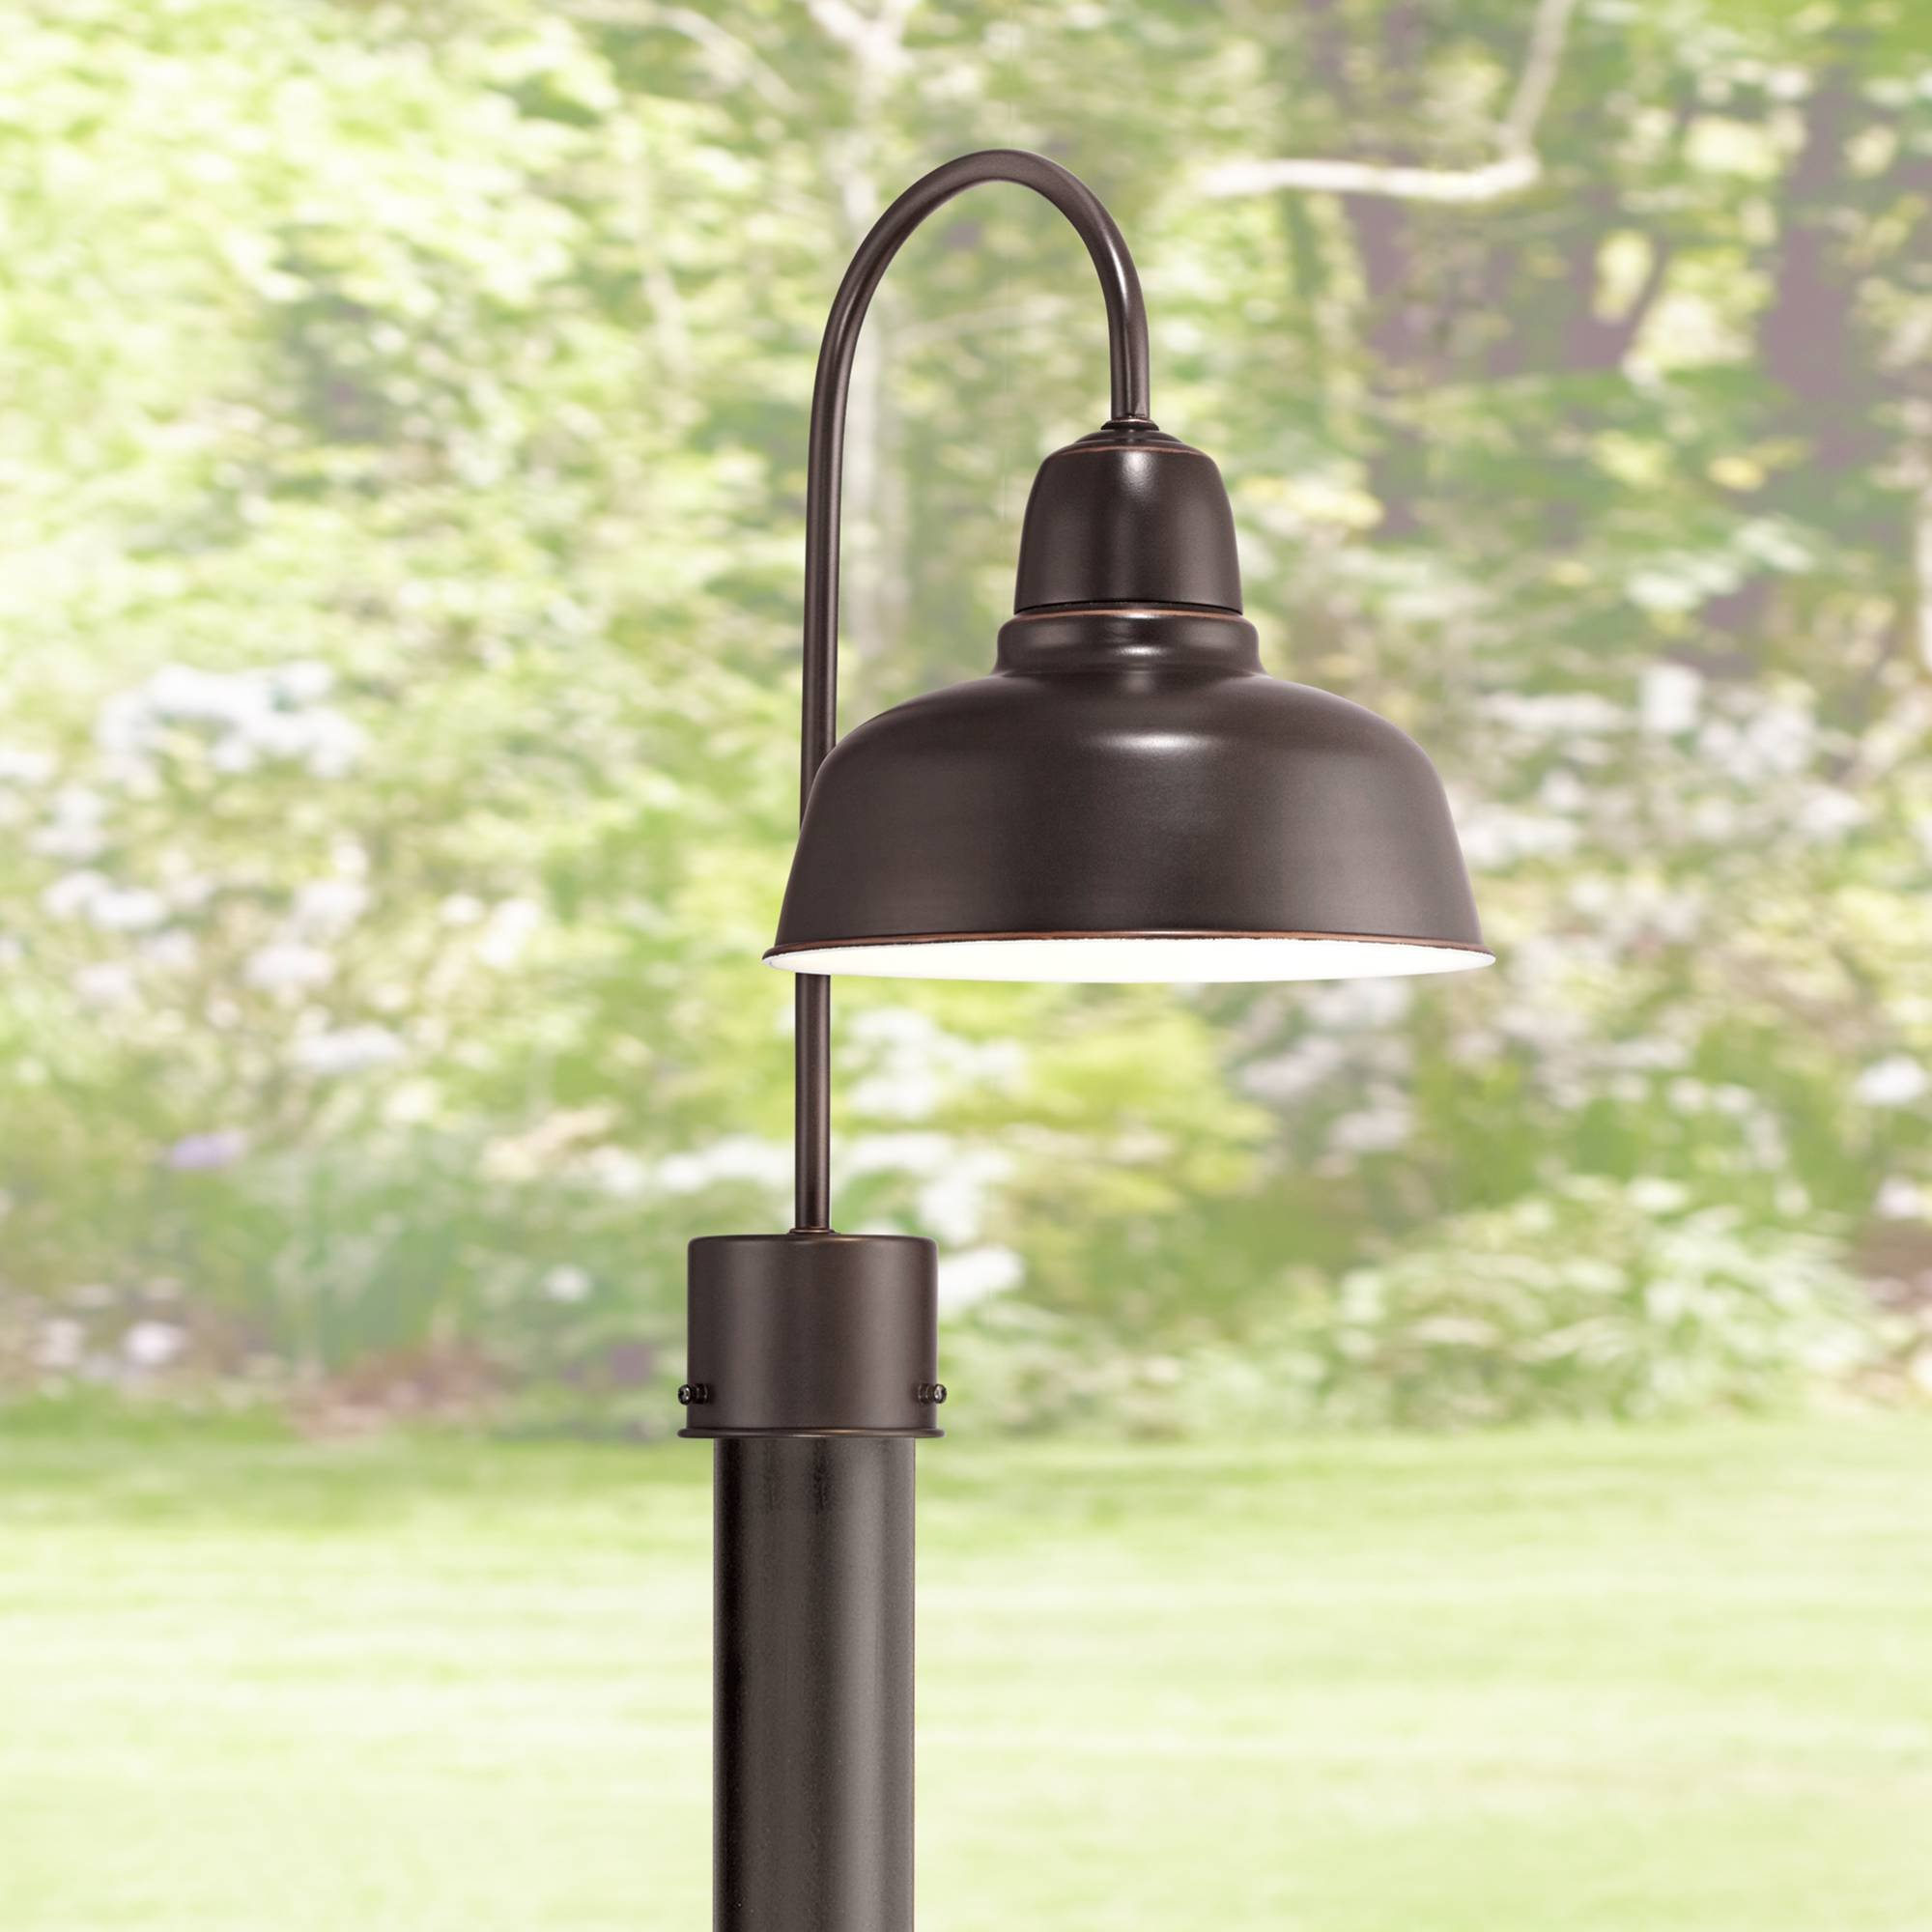 Urban Barn Industrial Outdoor Post Light Fixture Oil Rubbed Bronze 15 3/4'' for Exterior Garden Yard Patio Pathway - John Timberland